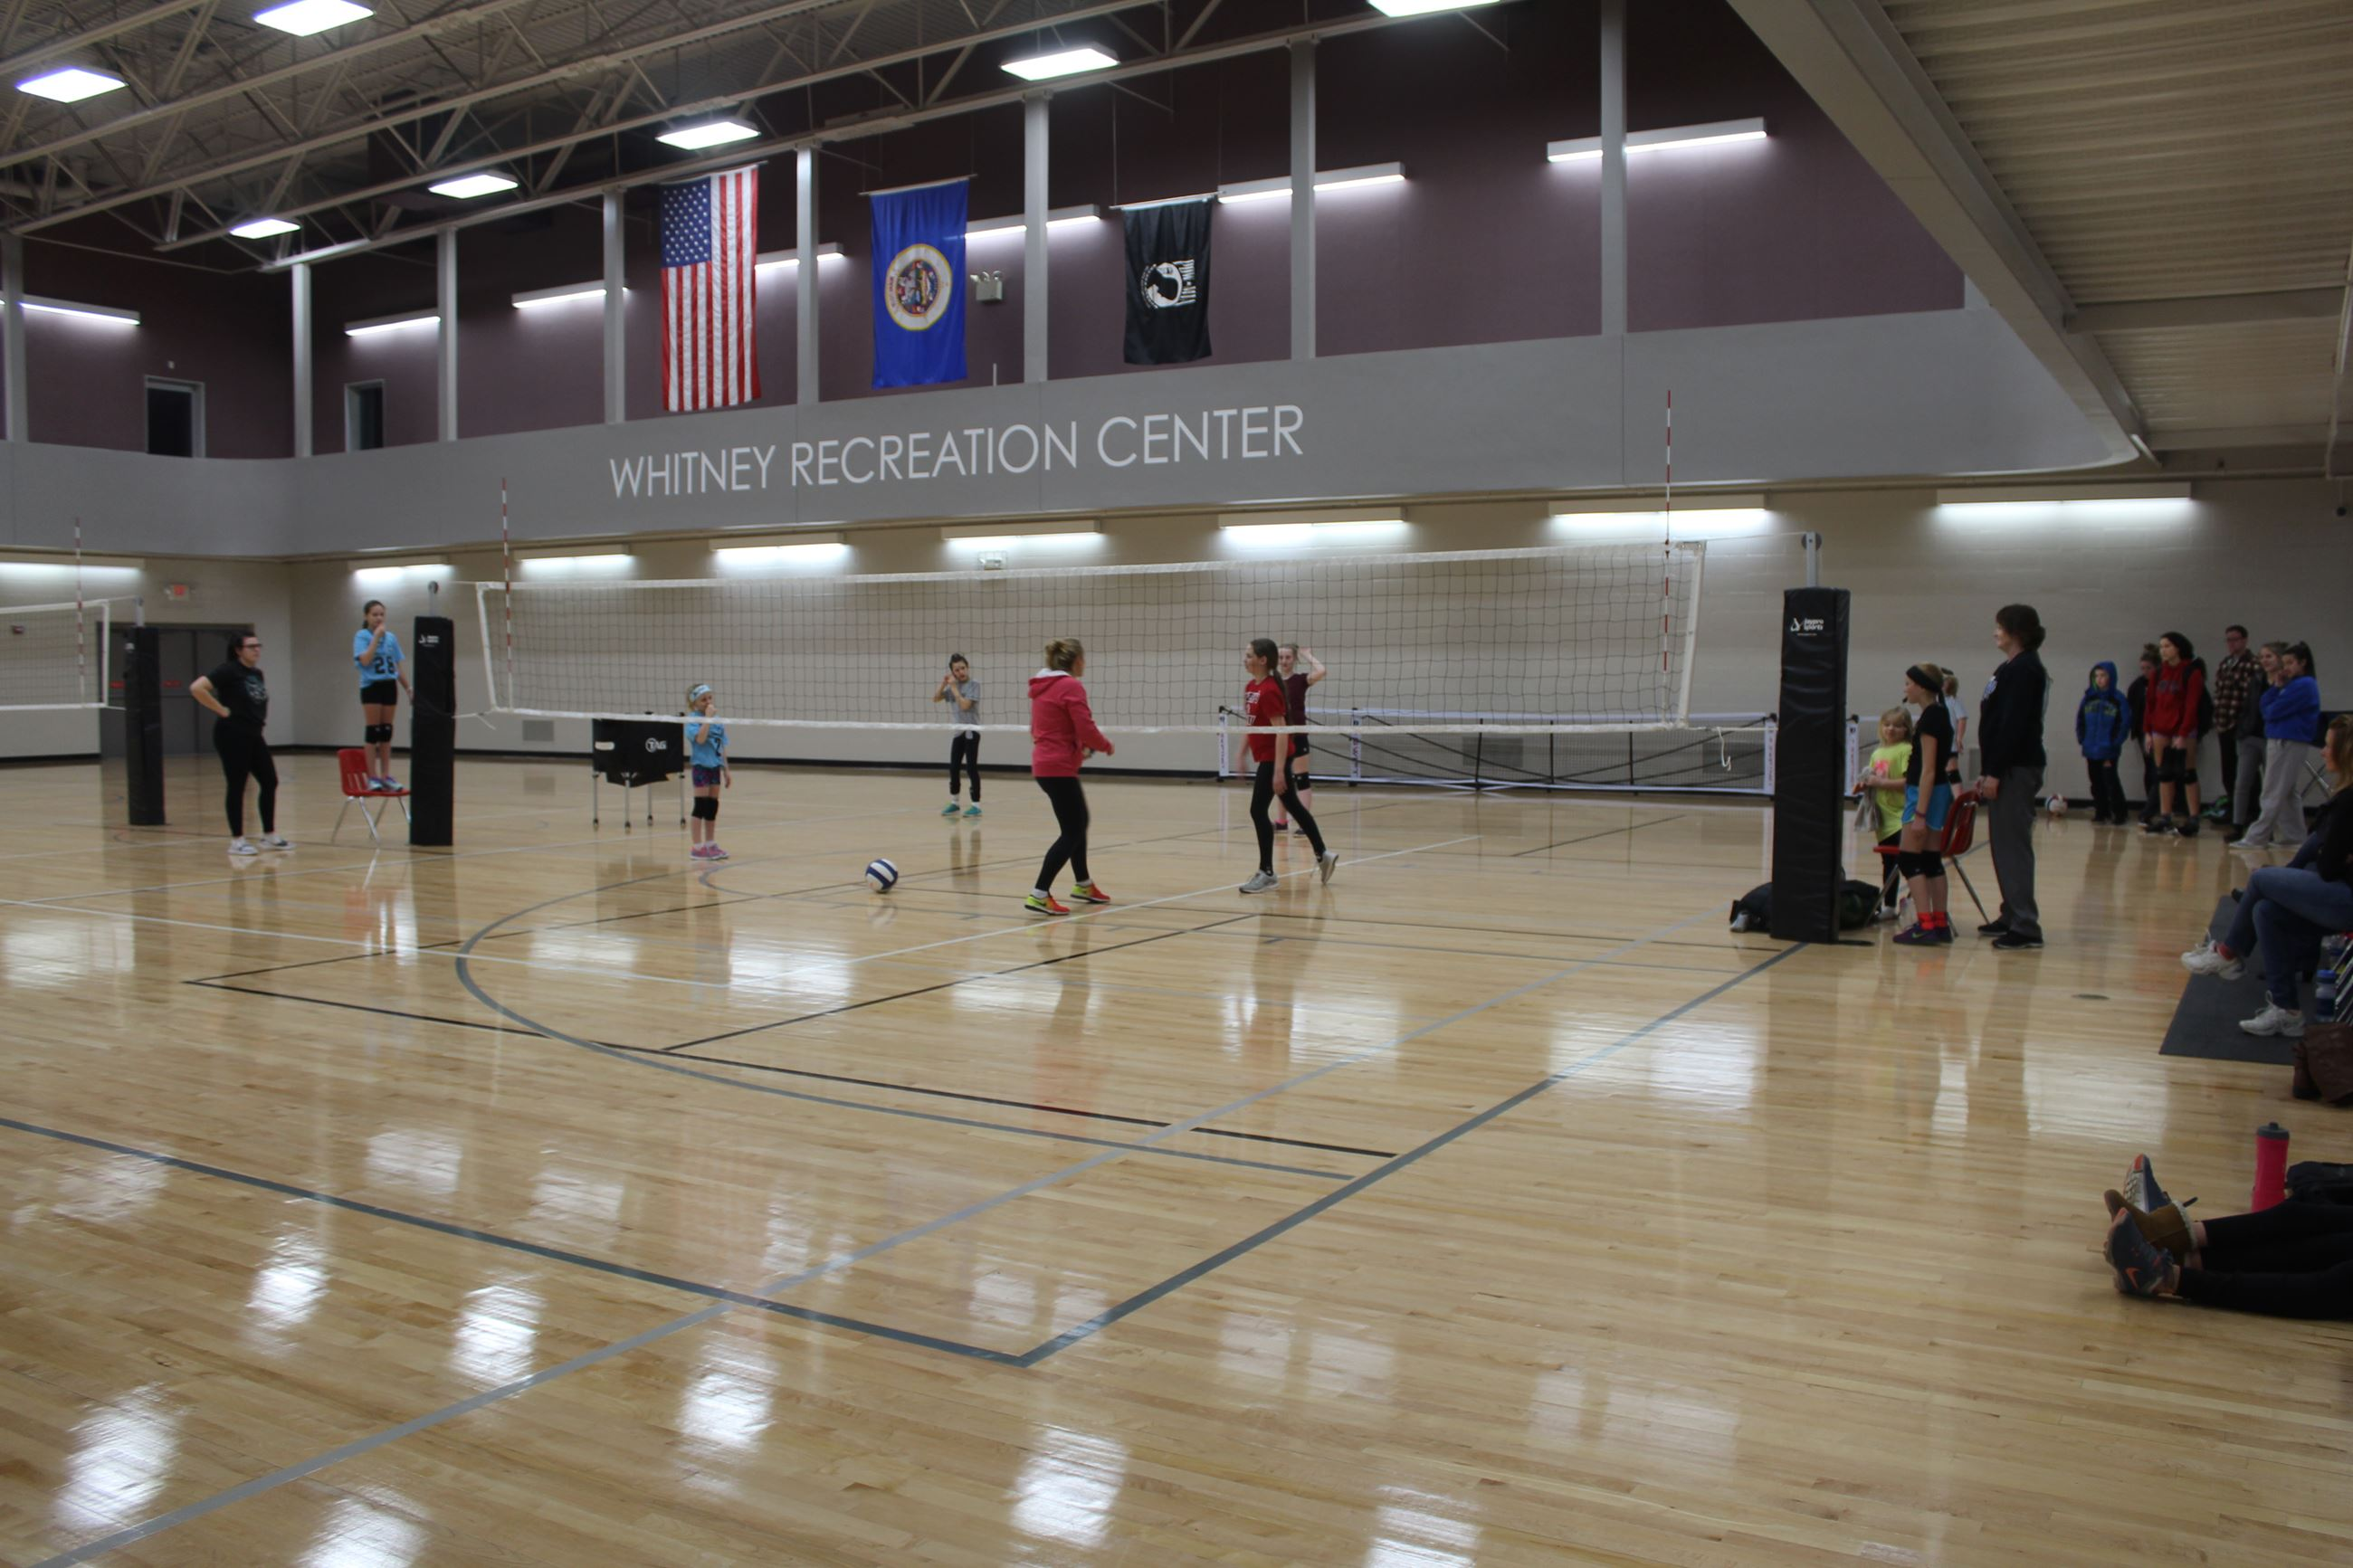 A group of girls receives instruction on playing the game of volleyball at the Whitney Recreation Ce